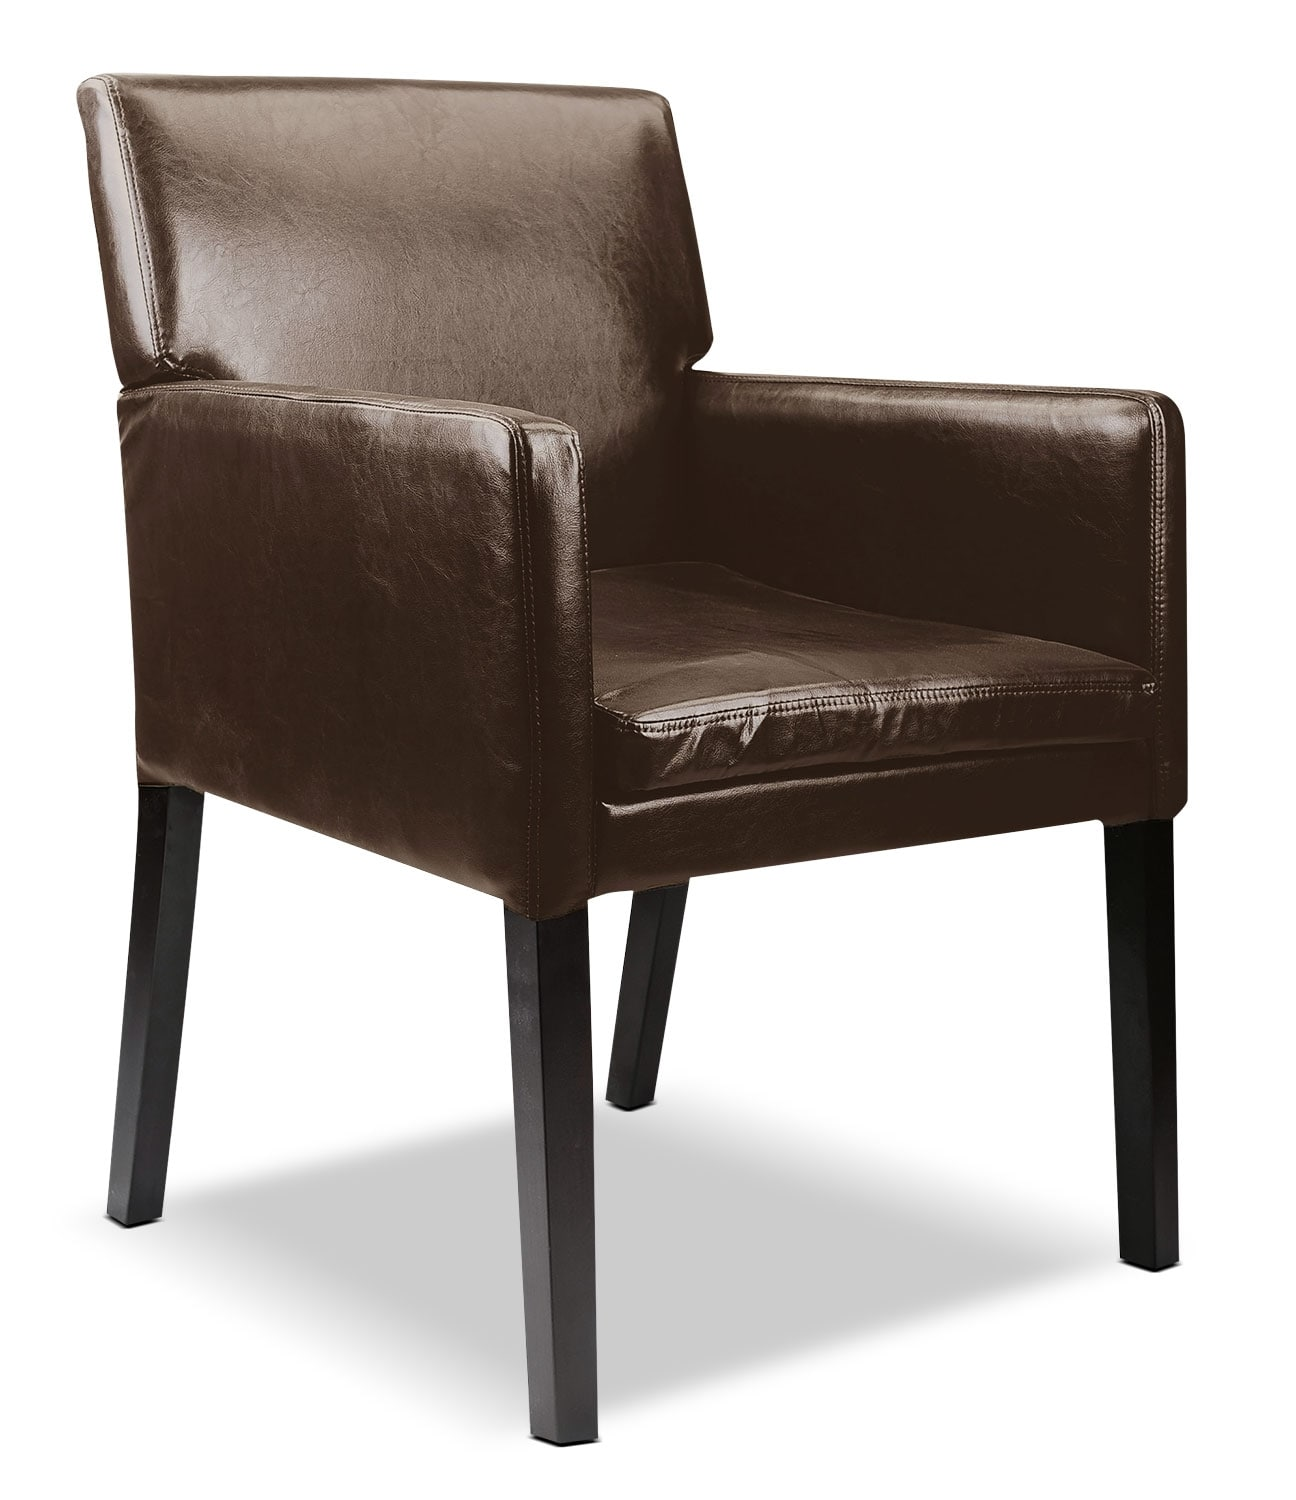 Living Room Furniture - LAD Bonded Leather Accent Chair – Dark Brown